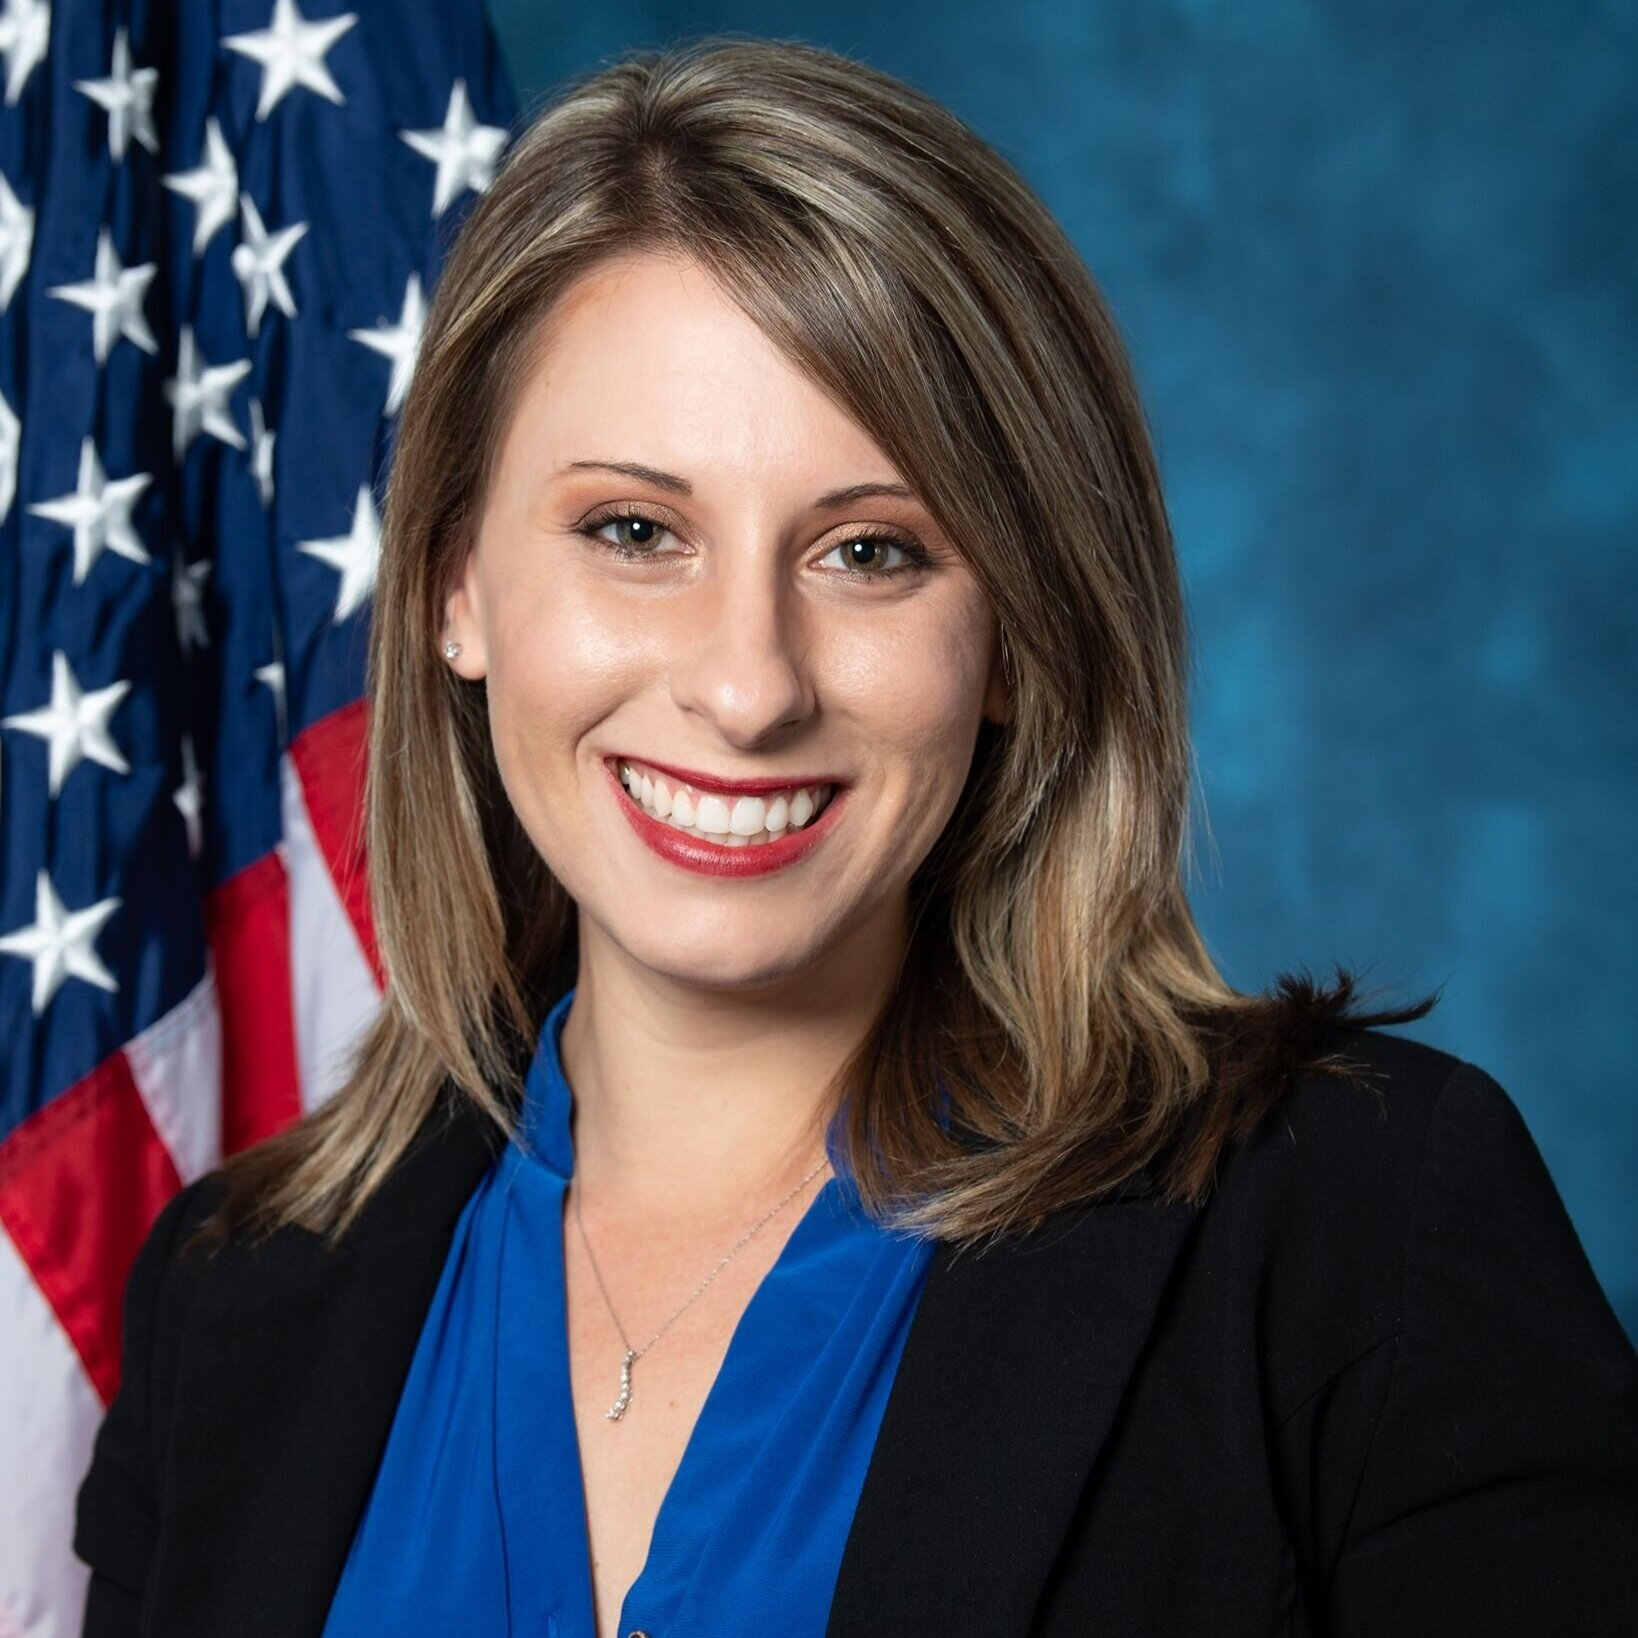 Rep. Katie Hill